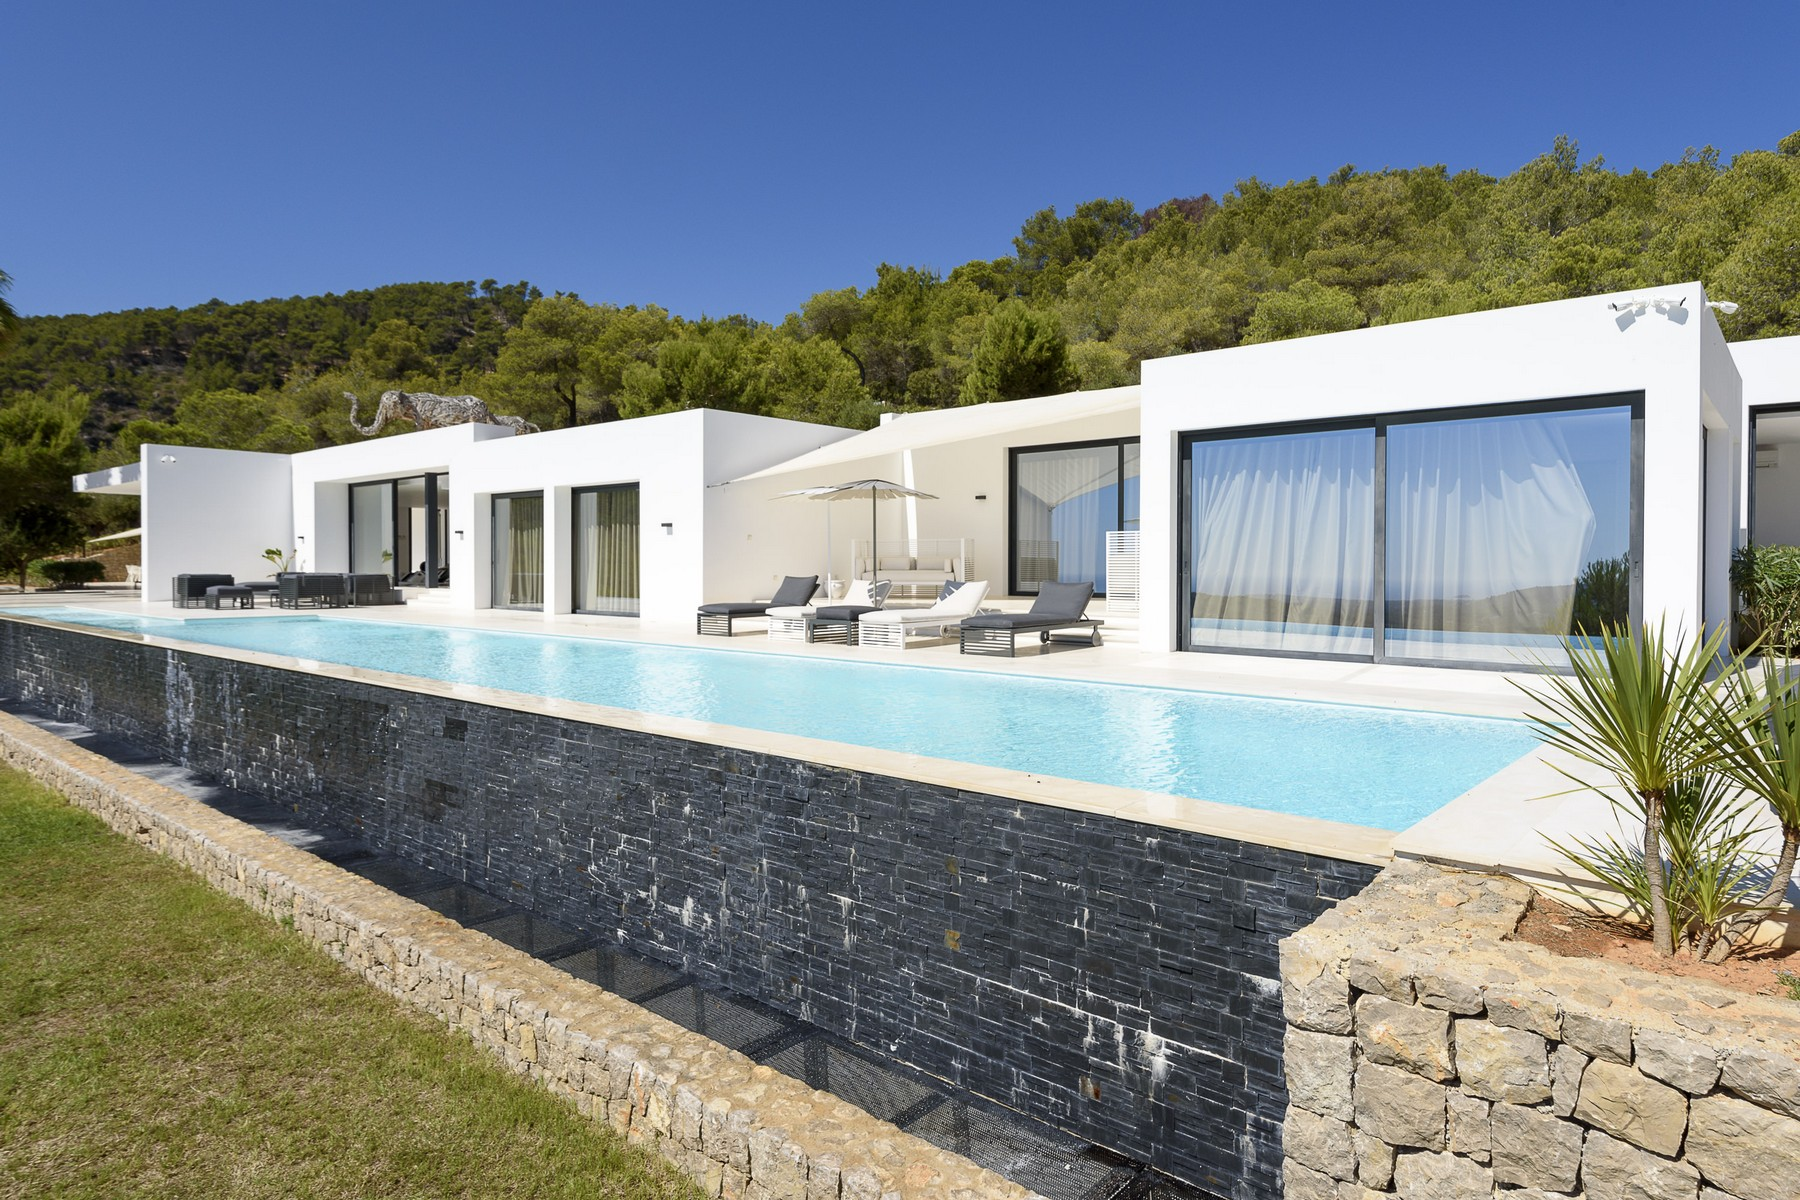 Maison unifamiliale pour l Vente à Contemporary Villa on 250'000 m2 in Morna Valley Santa Eulalia, Ibiza, 07850 Espagne